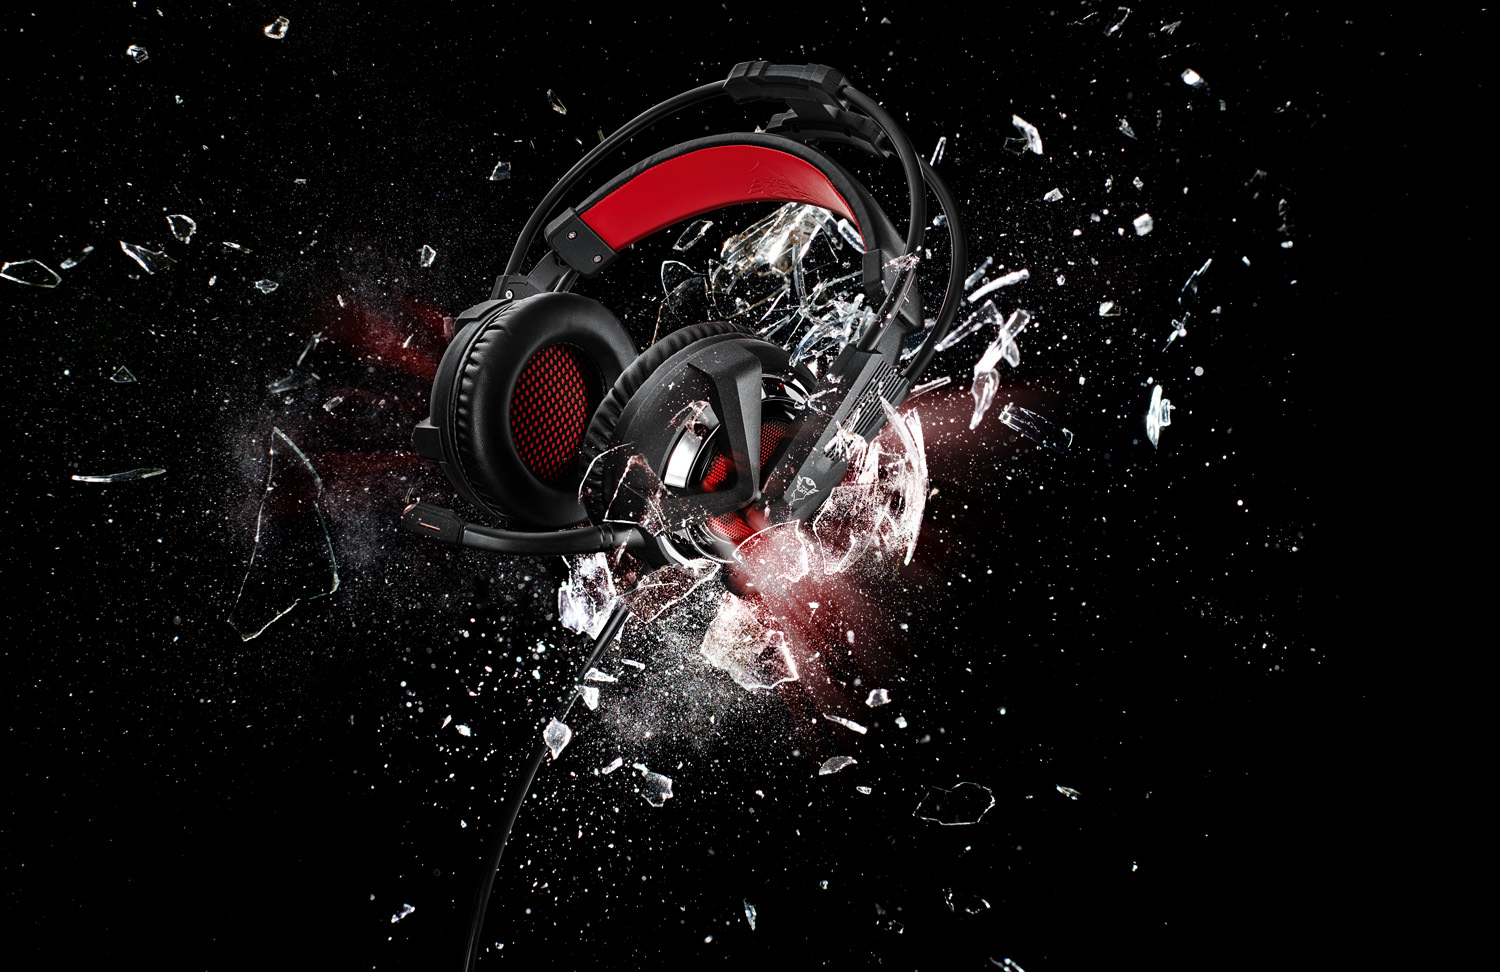 Preview: Trust Gaming Illuminated GXT 353 Bass Vibration Headset